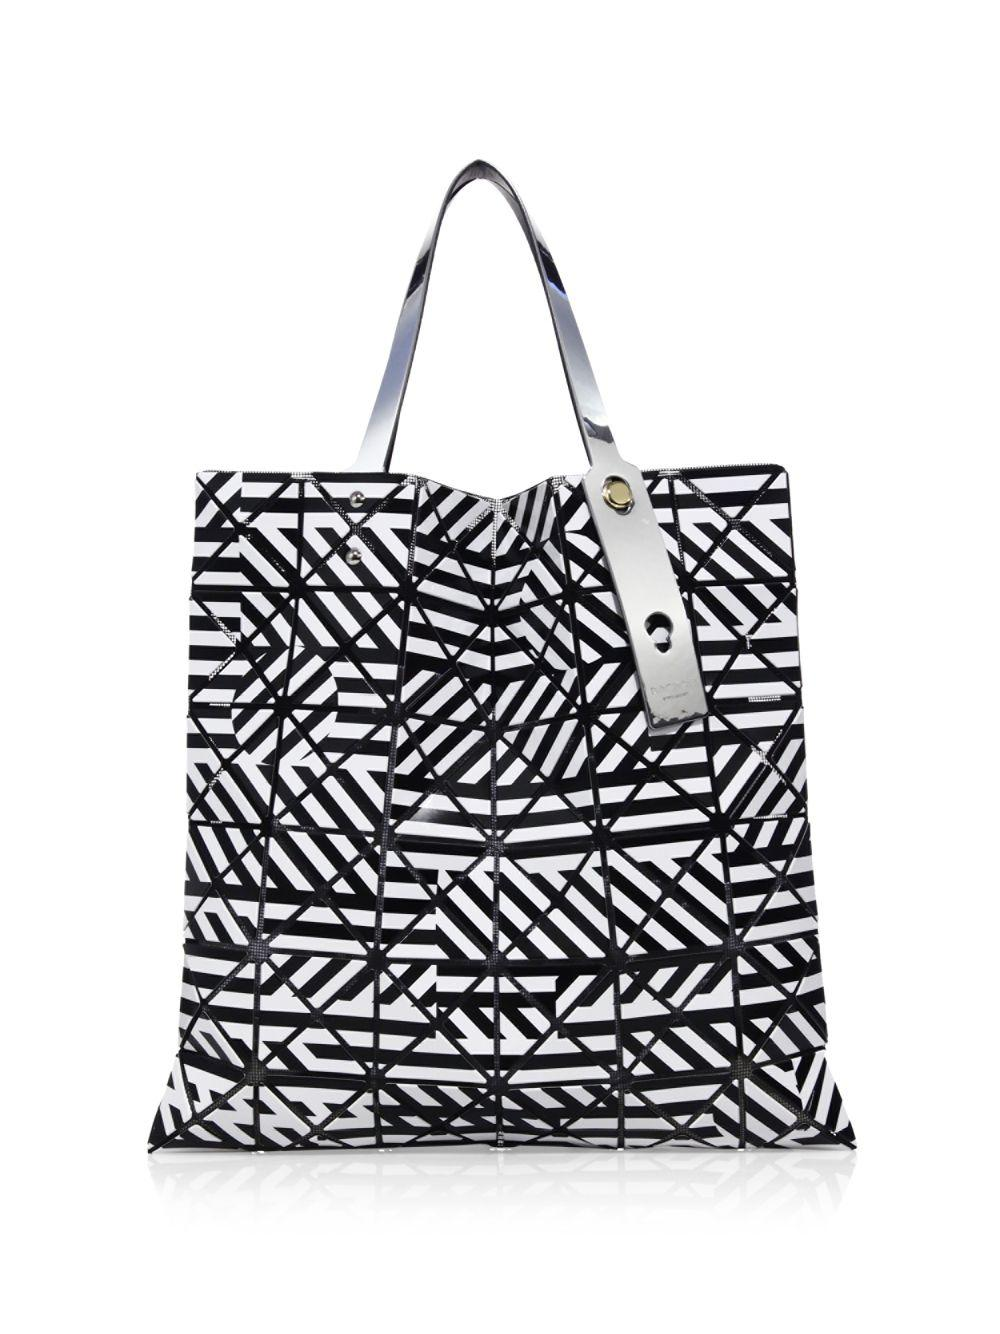 Bao Bao Issey Miyake Mirage Maze Tote in Black - Save 15% - Lyst be9fc13c201bf